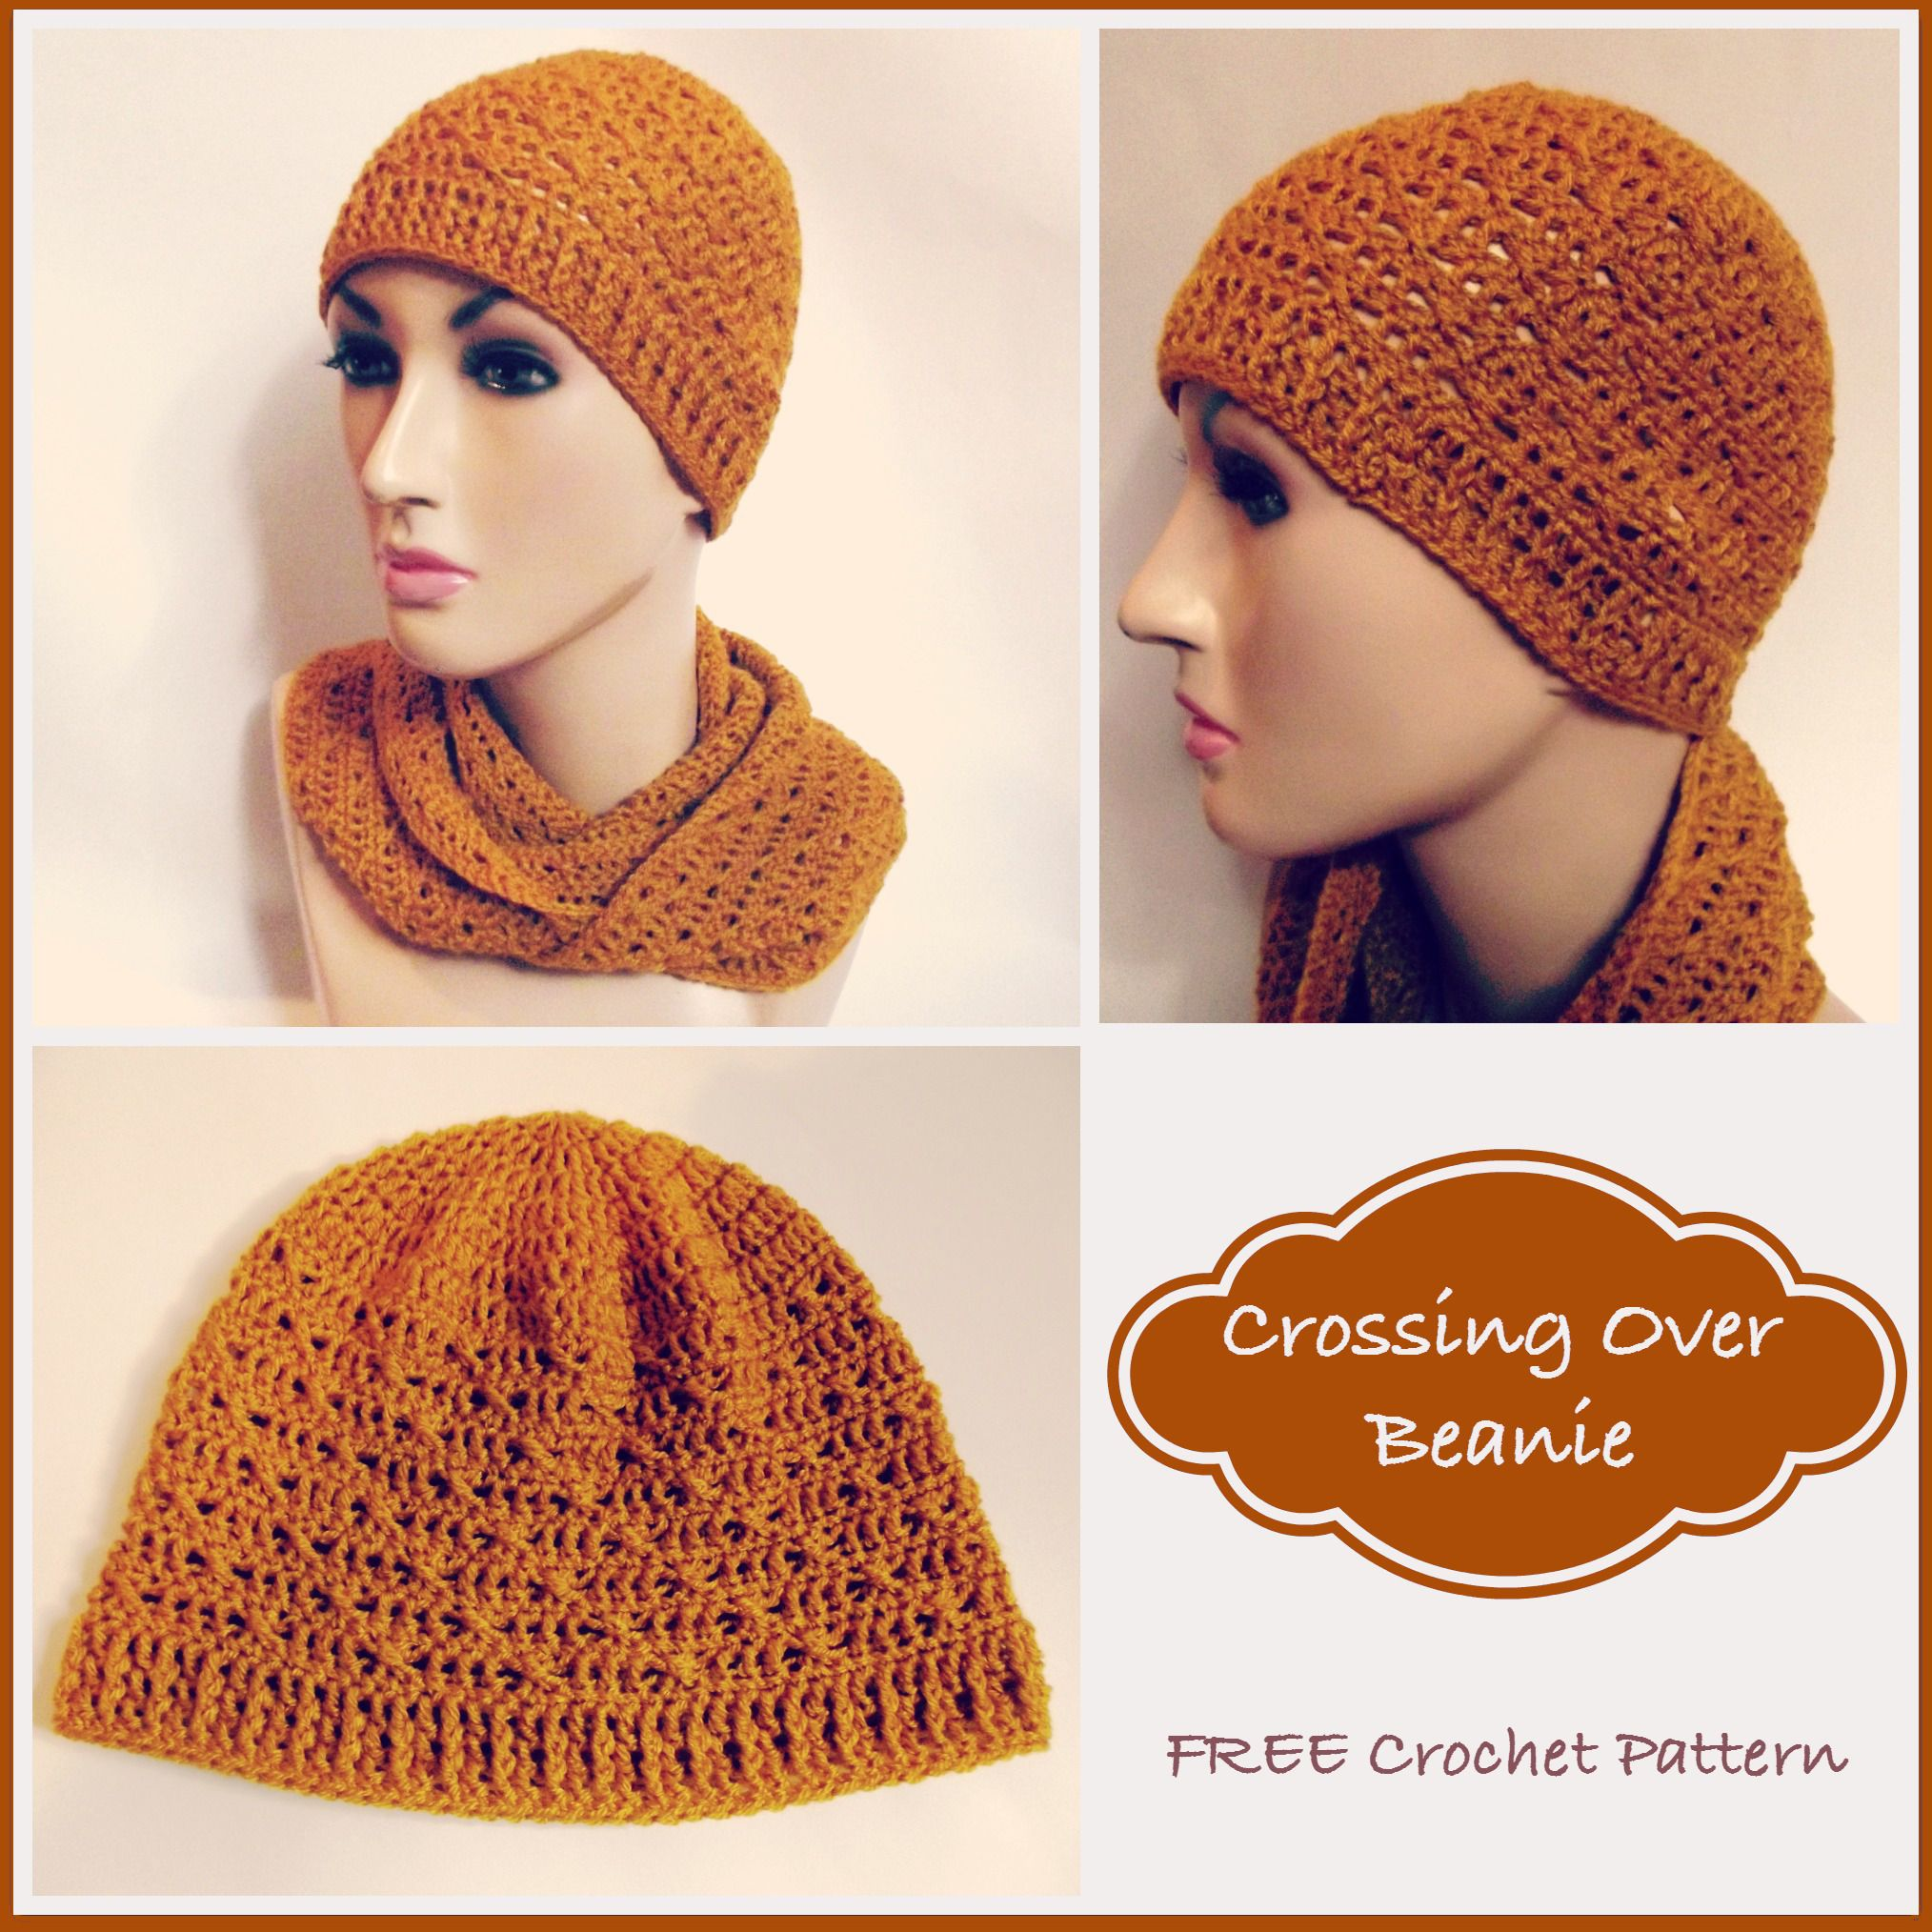 Crossing Over Beanie ~ FREE Crochet Pattern | Recipes to Cook ...